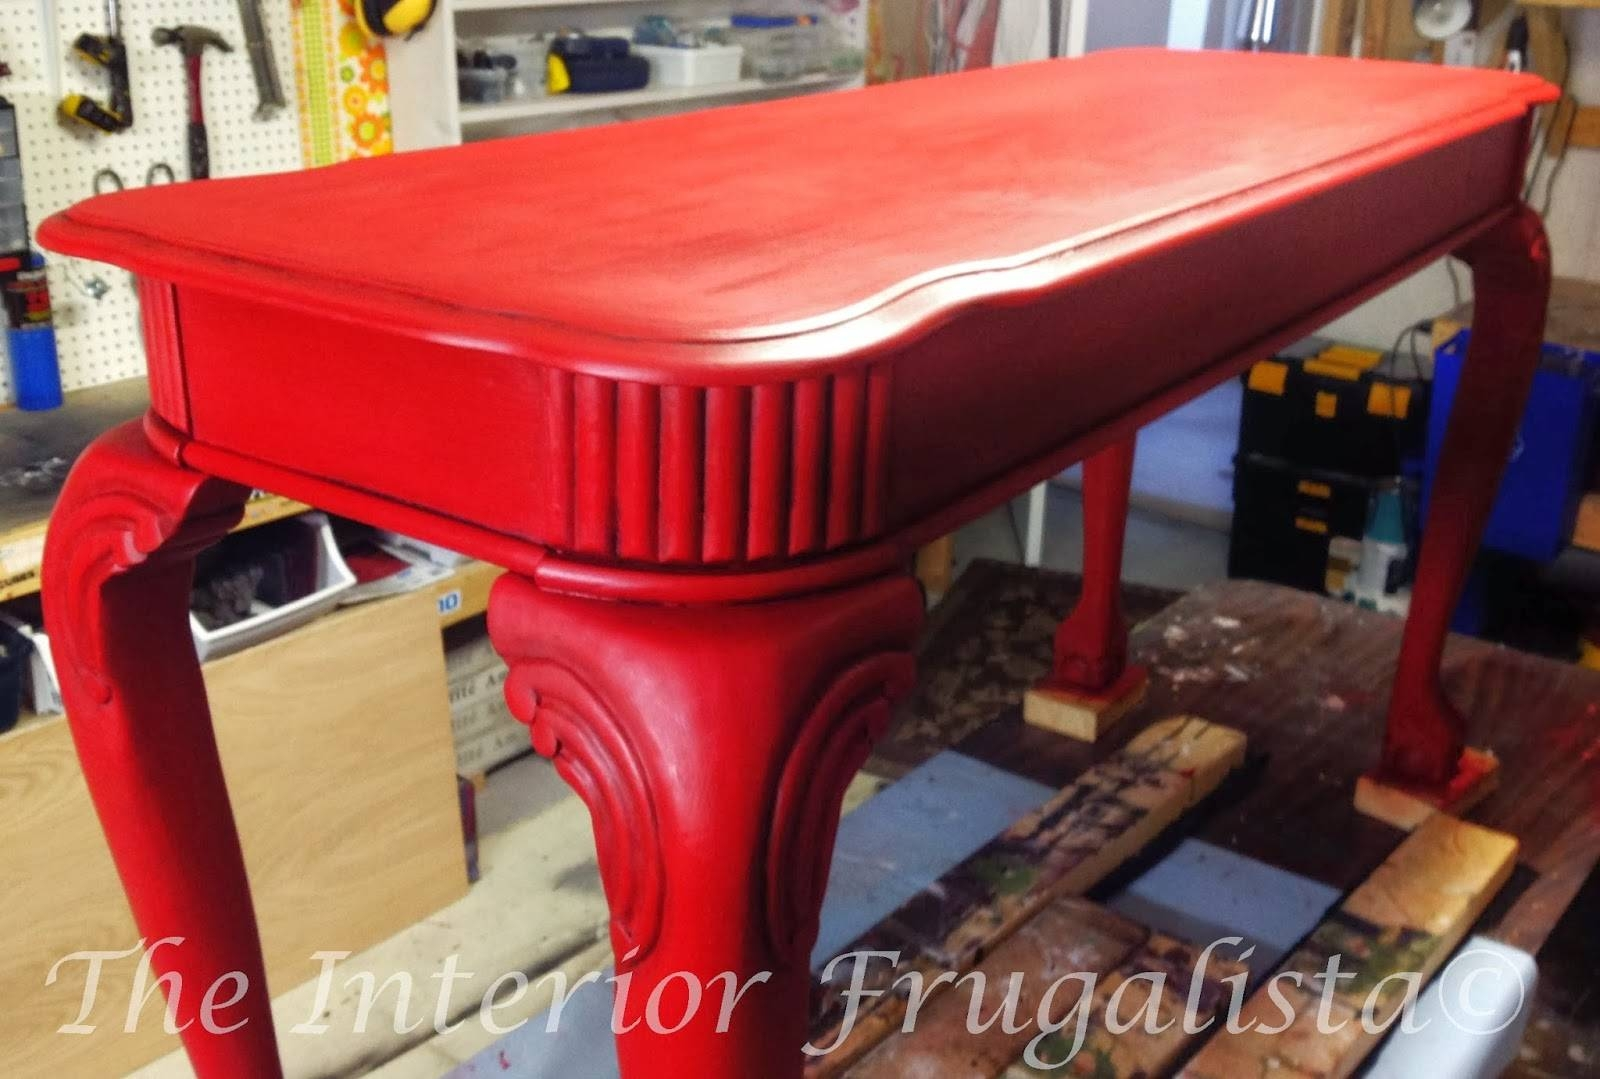 She's A Beauty! | The Interior Frugalista: She's A Beauty! pertaining to Red Sofa Tables (Image 7 of 15)